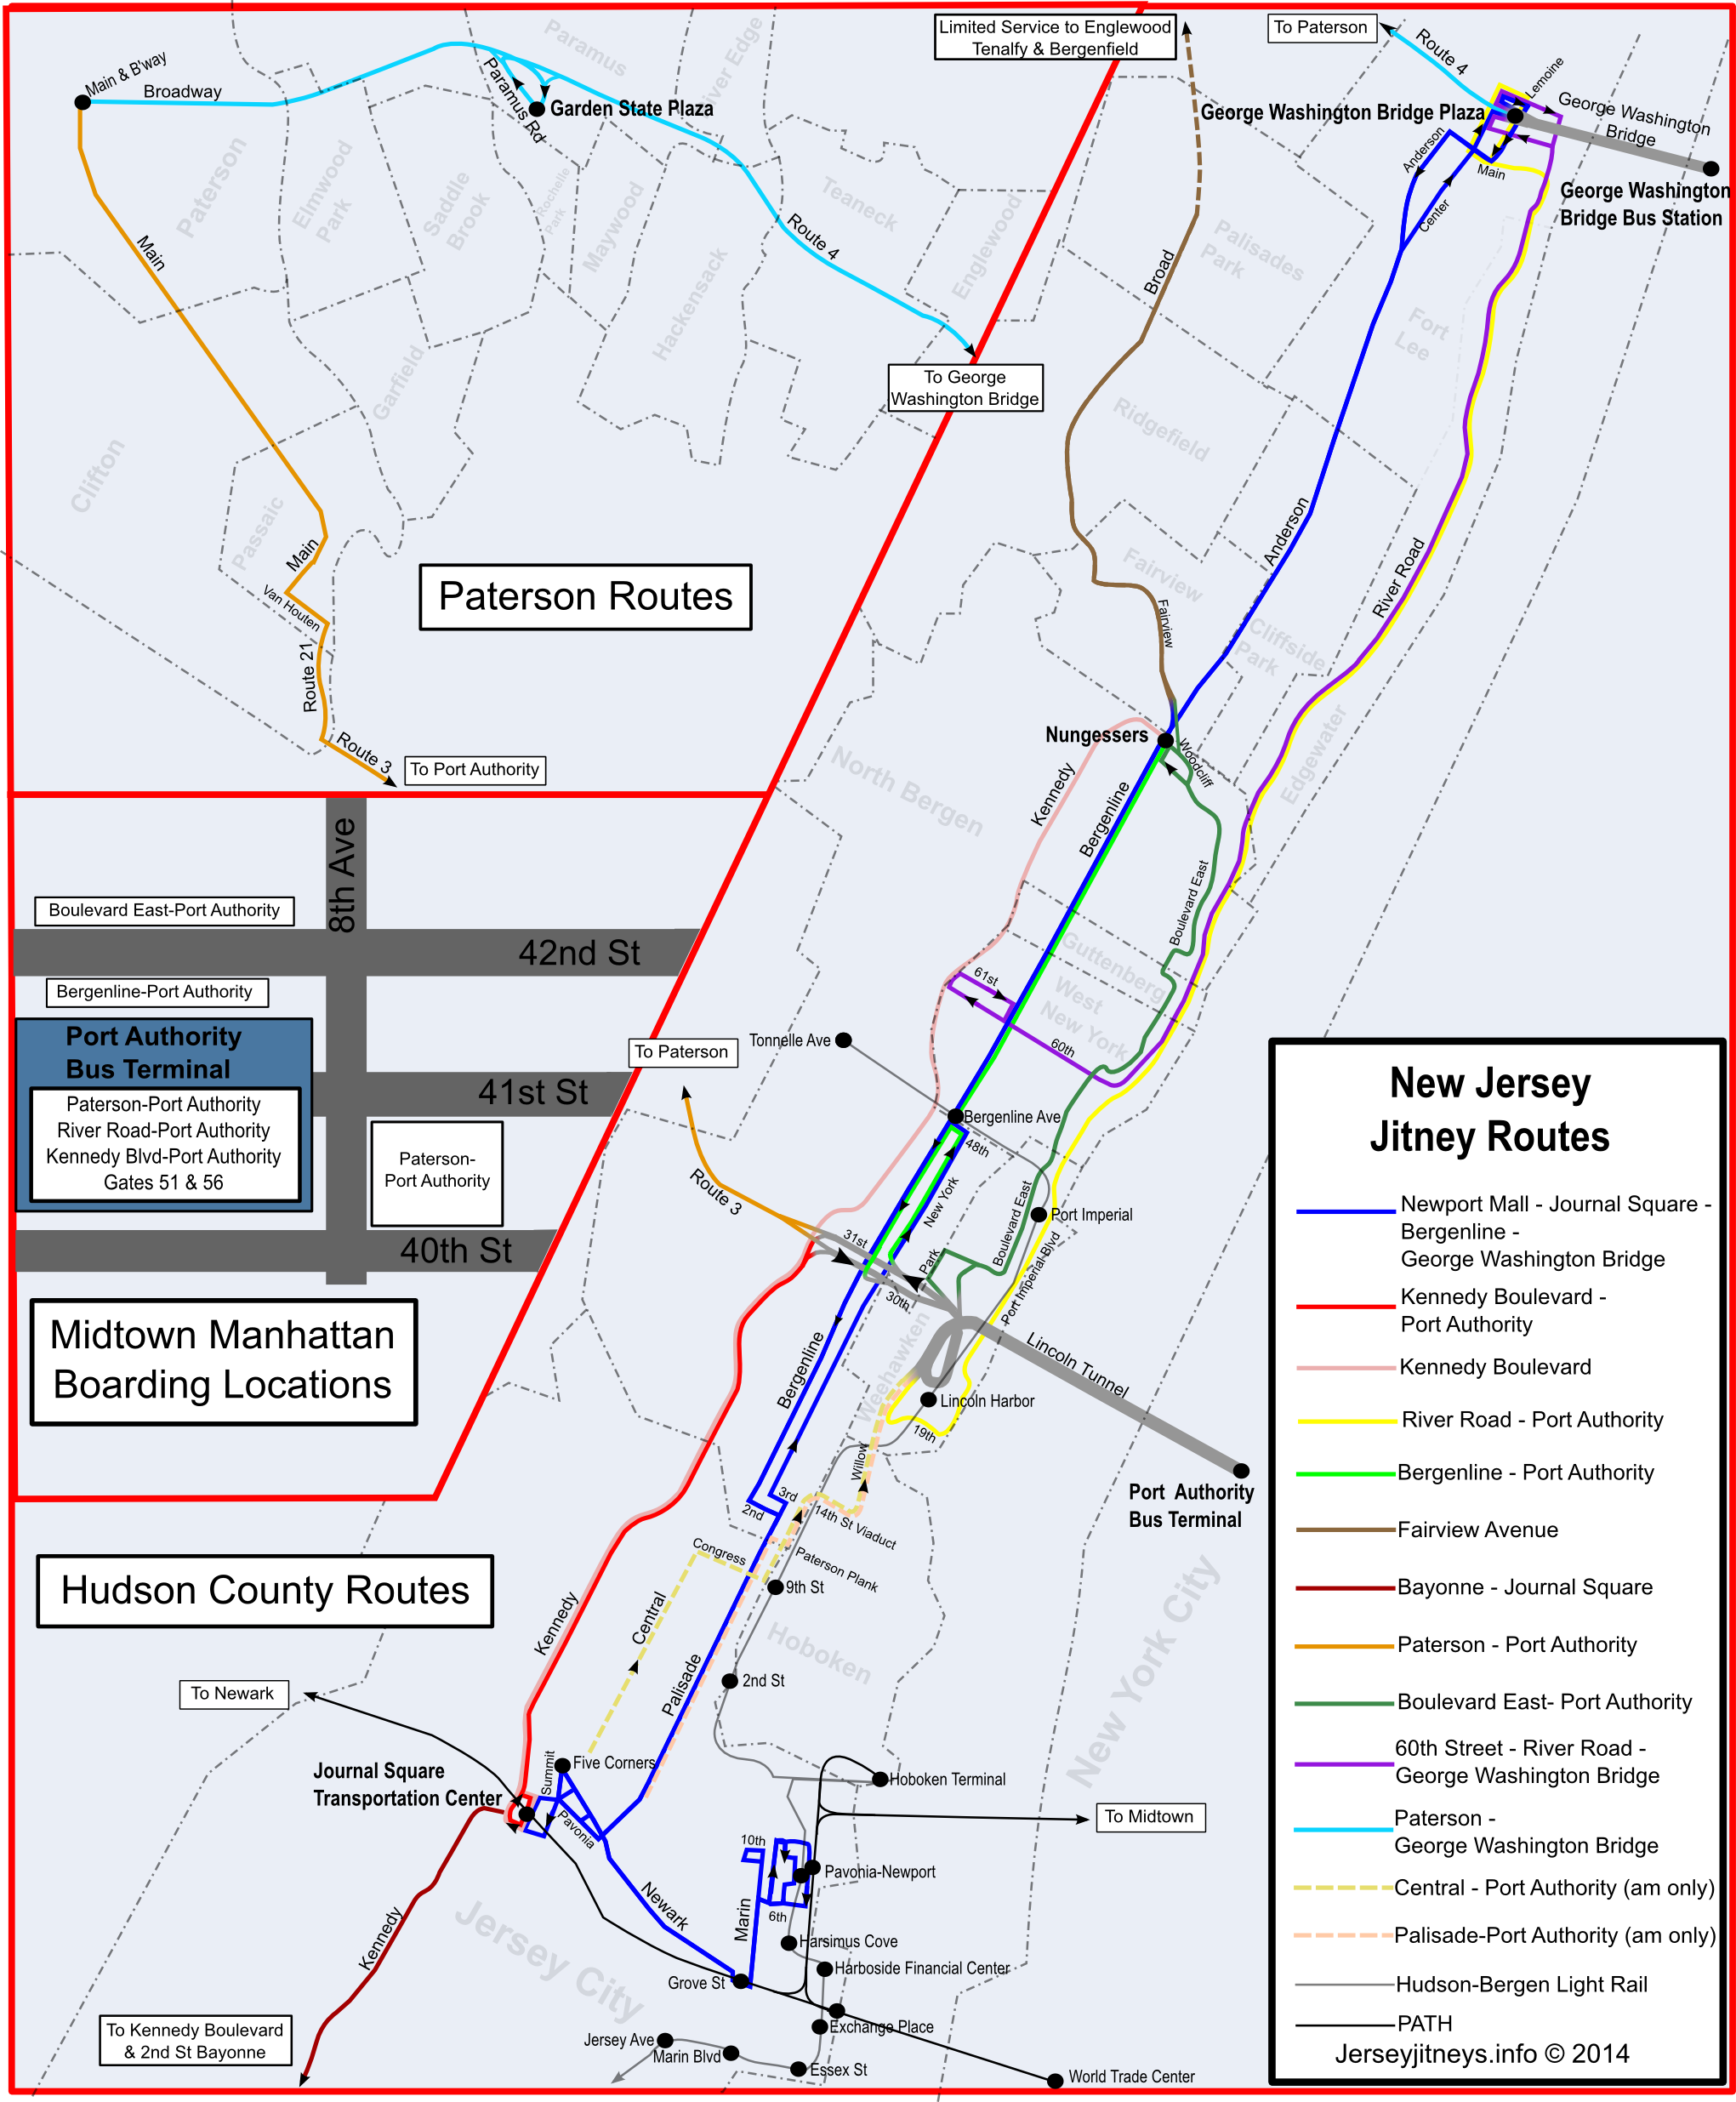 Rider Tips | Jitney Buses of New Jersey